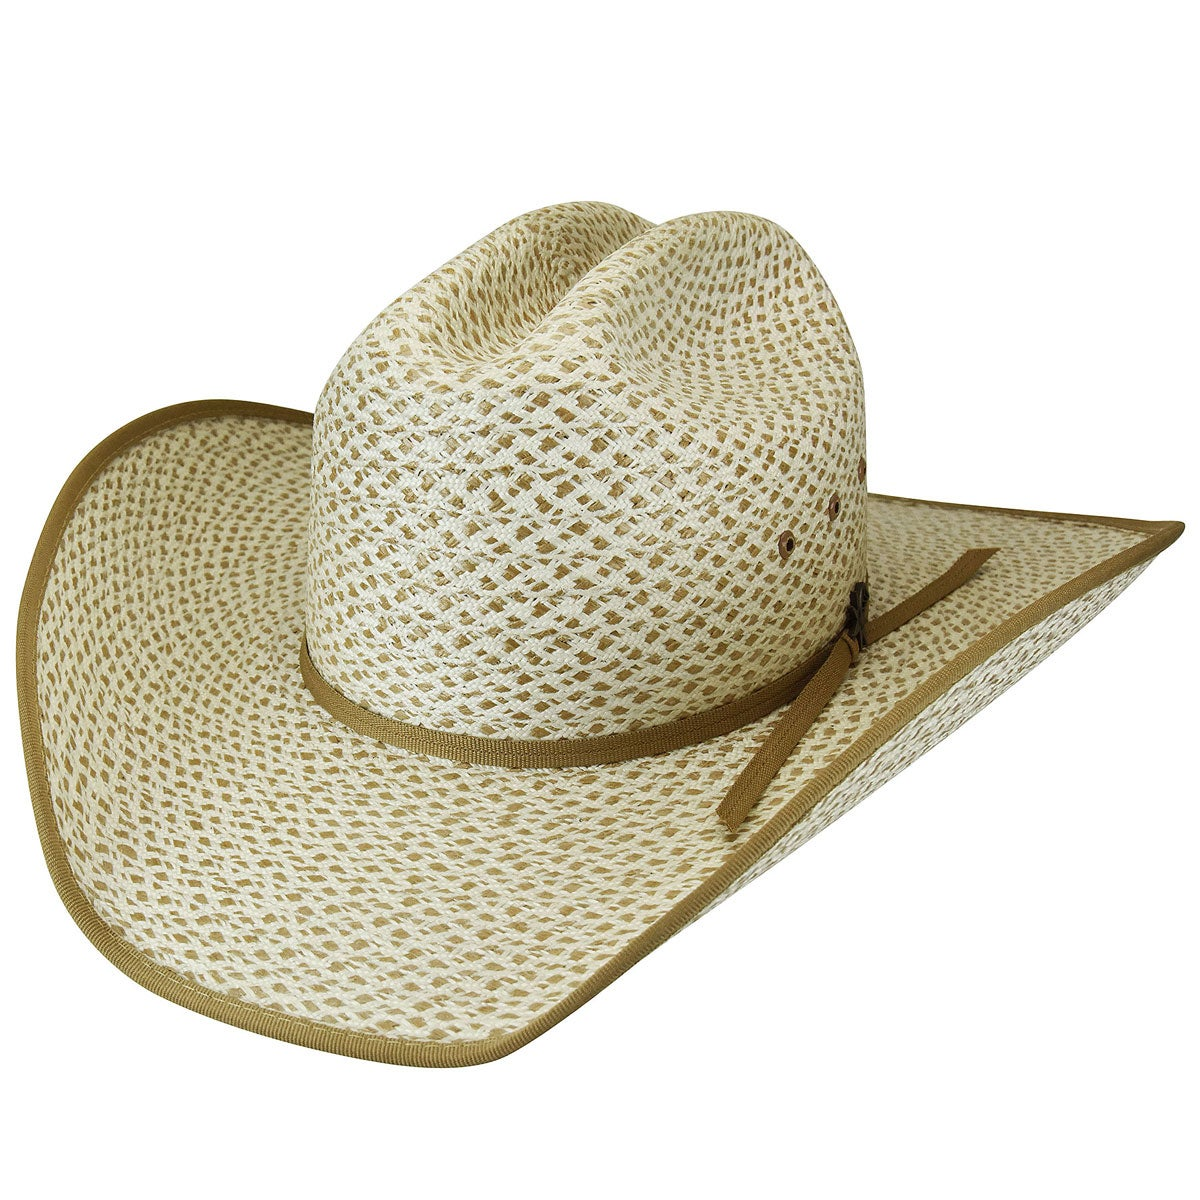 Bailey Western Chaparral 4X Western Hat in IVORY,CAMEL